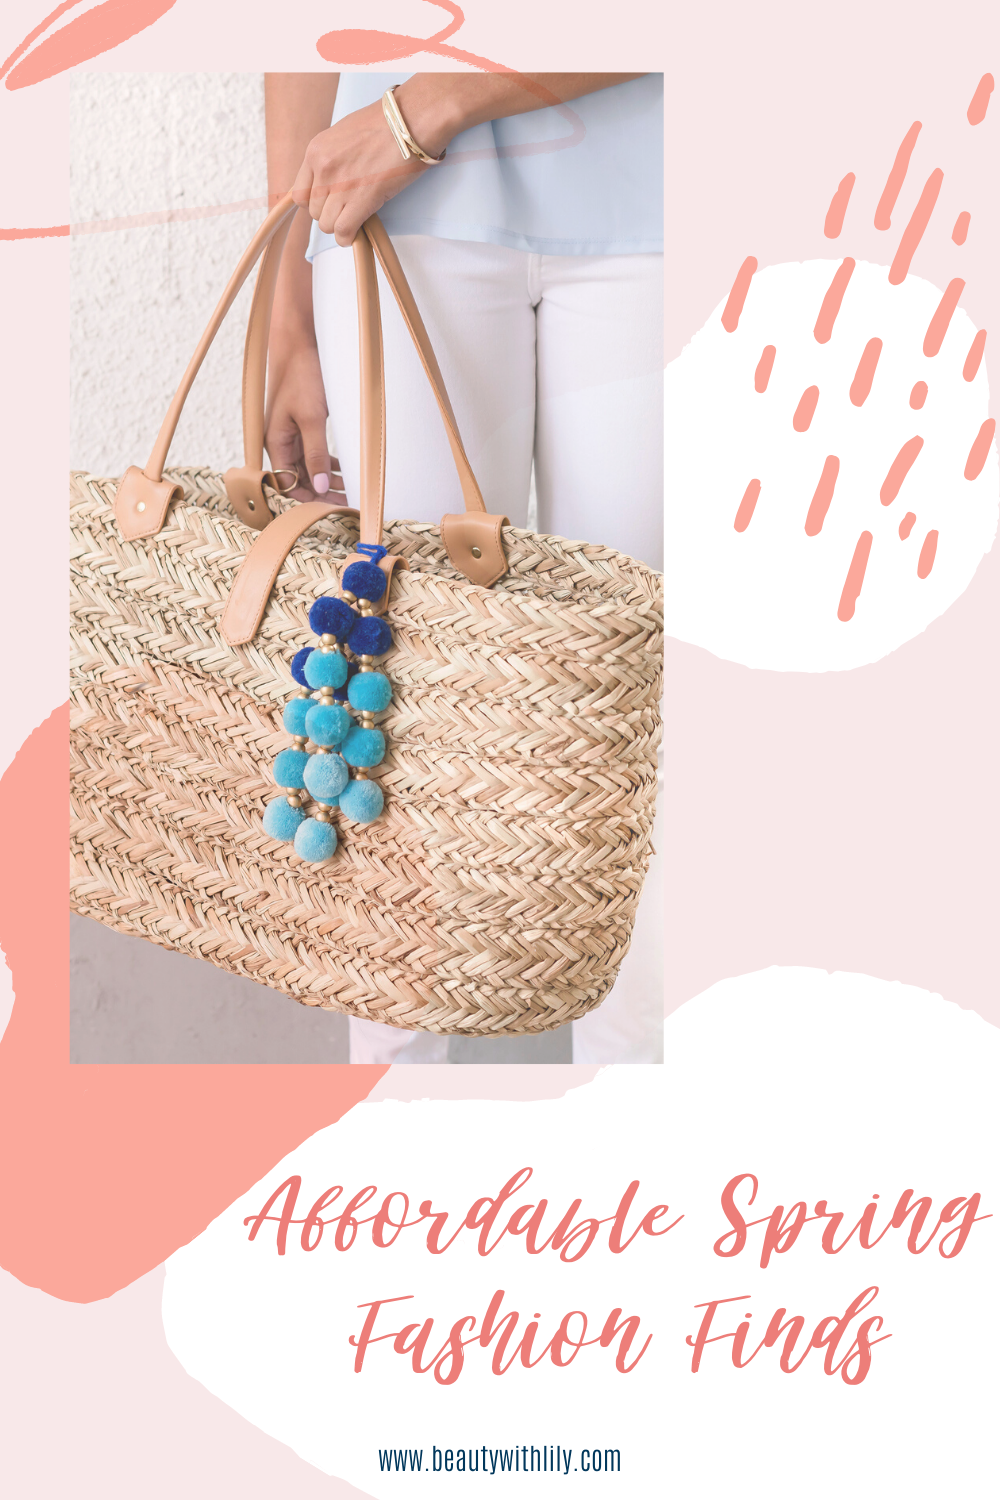 The Best Spring Fashion Finds on Amazon // Affordable Spring Fashion // Spring Outfit Ideas // Outfit Inspiration // Summer Fashion // Amazon Finds | Beauty With Lily #springfashion #amazonfinds #outfitideas